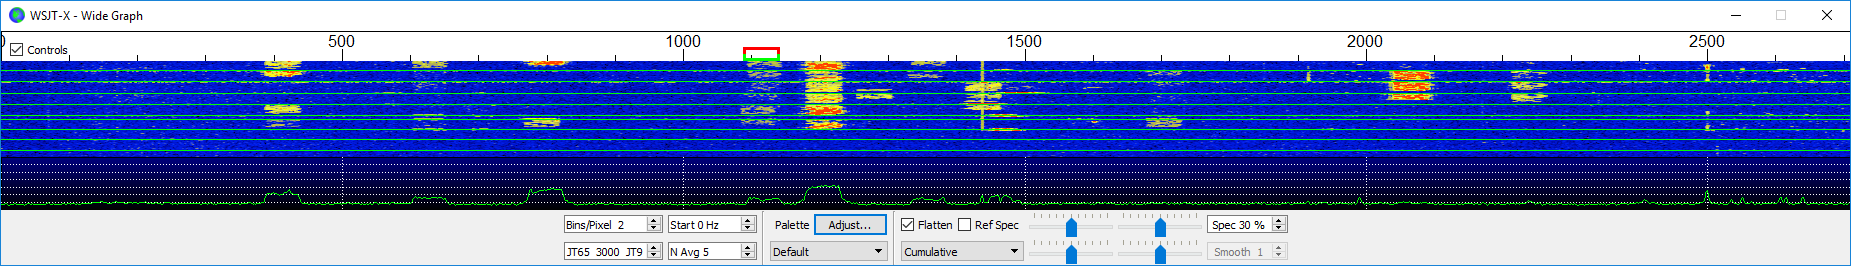 FT8-band-scope